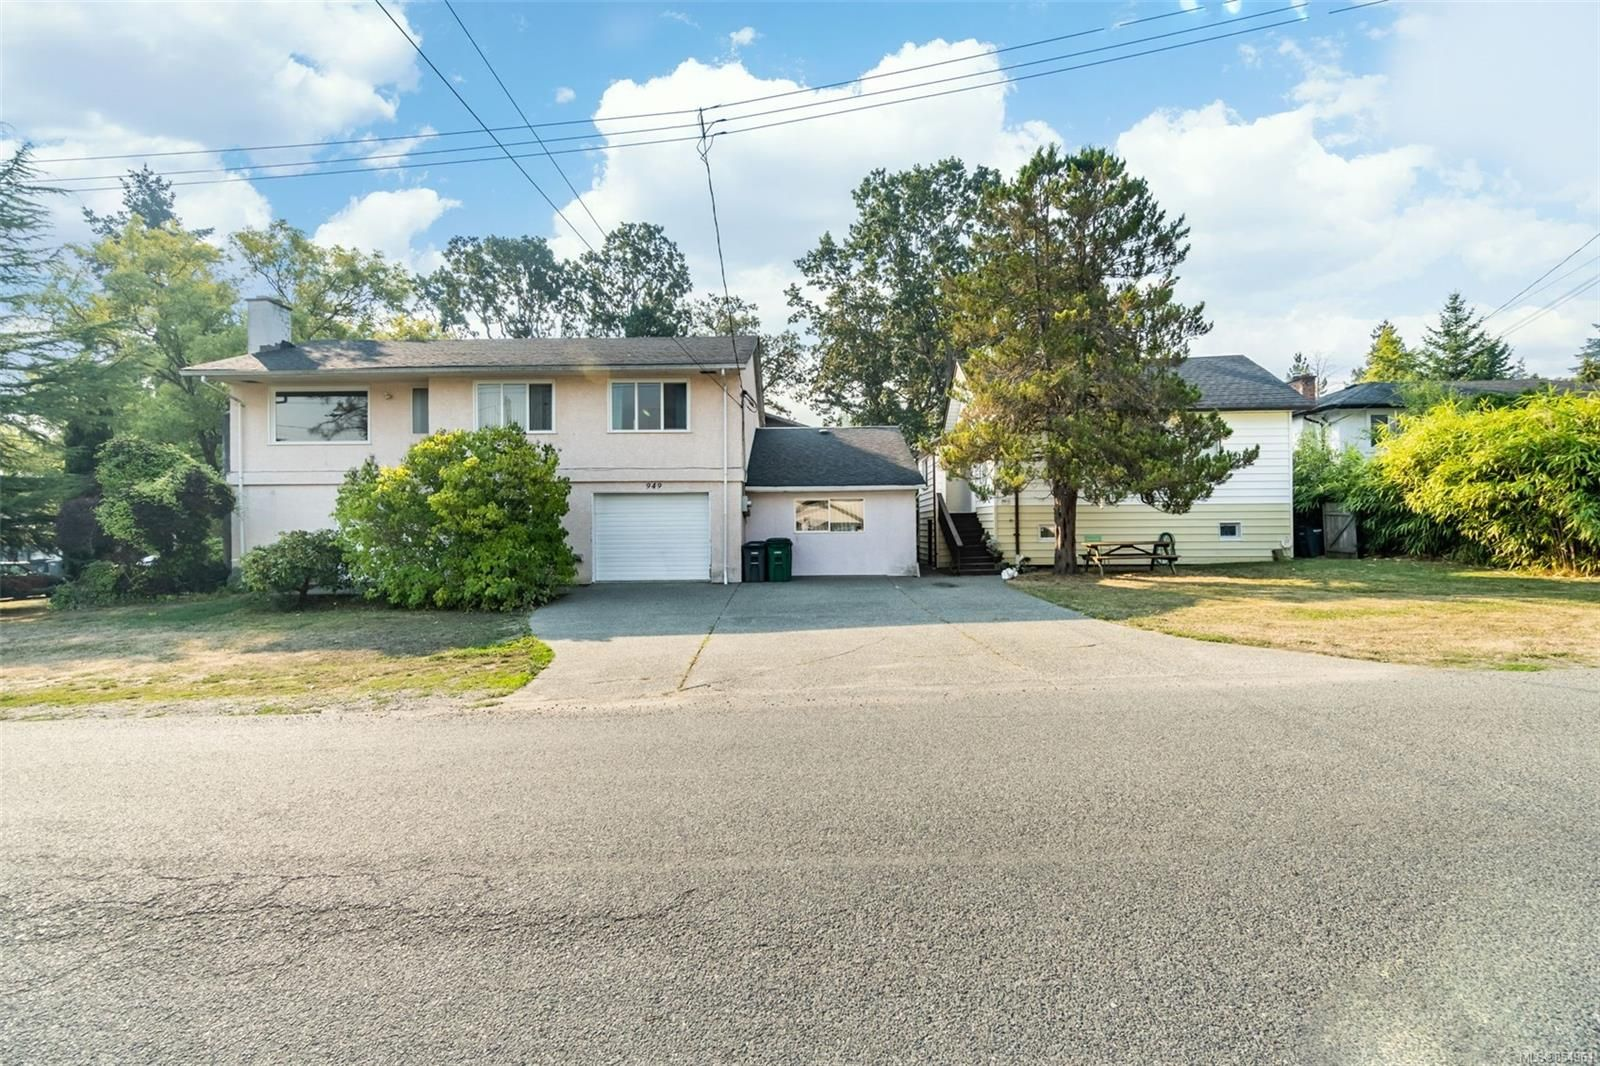 Main Photo: 949 McBriar Ave in Saanich: SE Lake Hill House for sale (Saanich East)  : MLS®# 854961